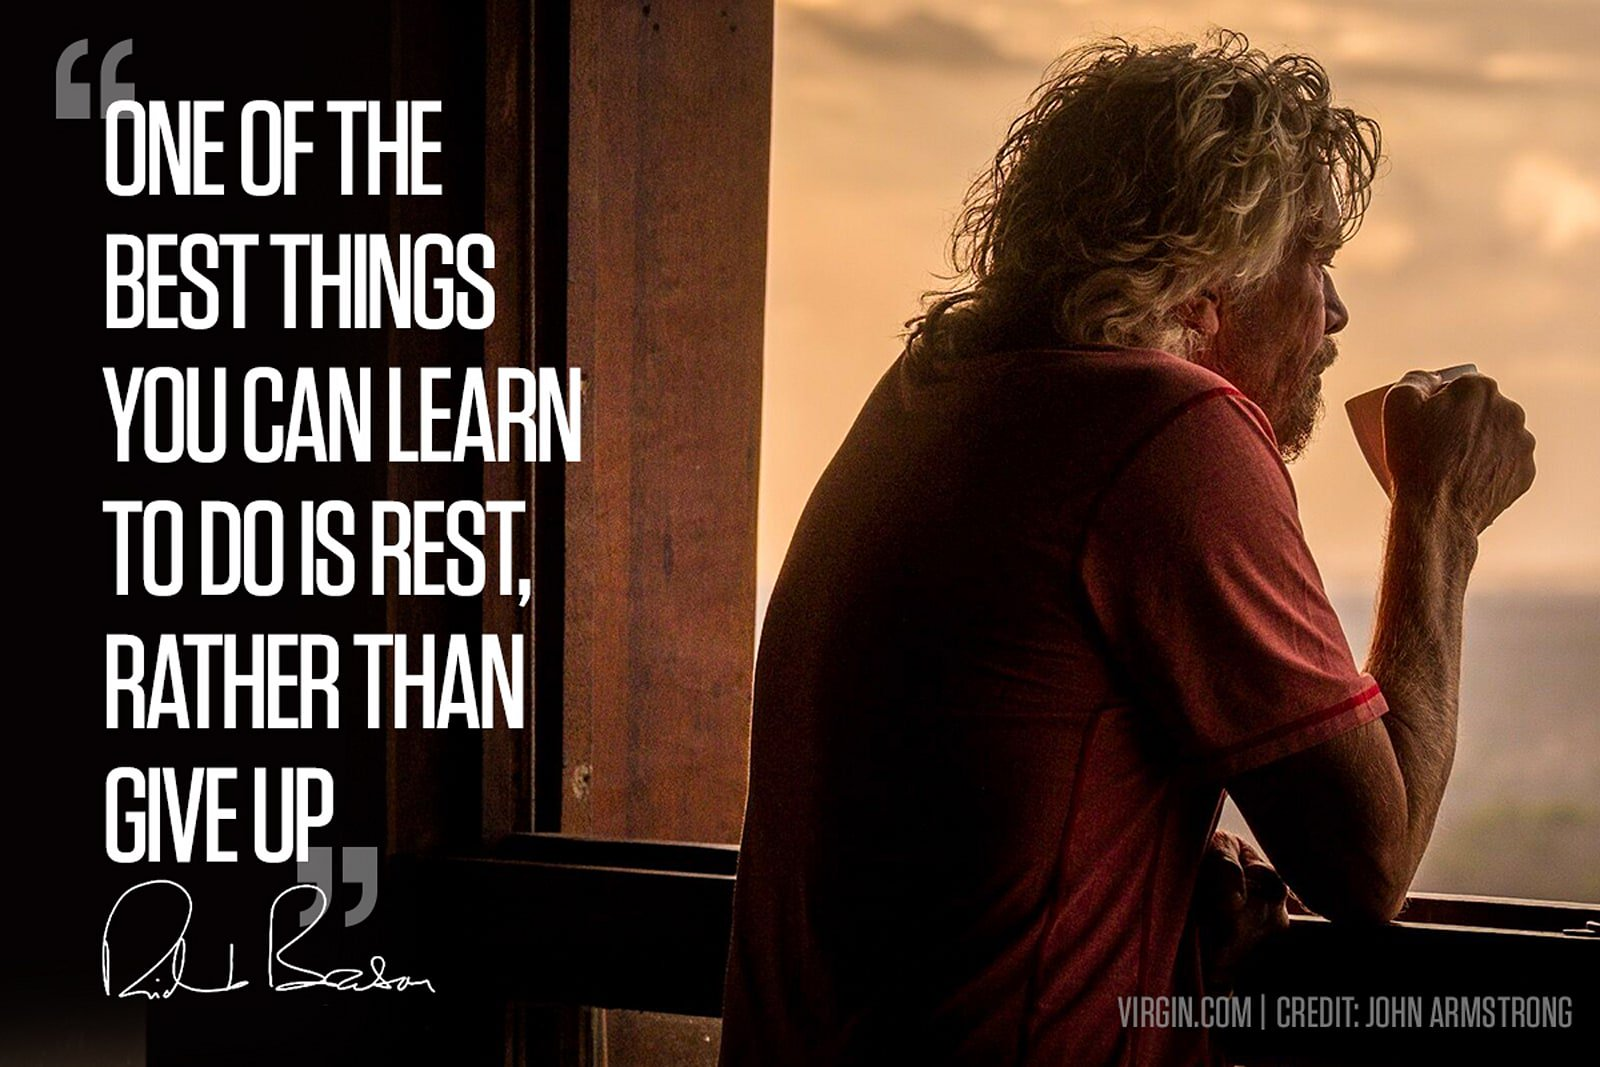 Richard Branson If youu0027re feeling frustrated or